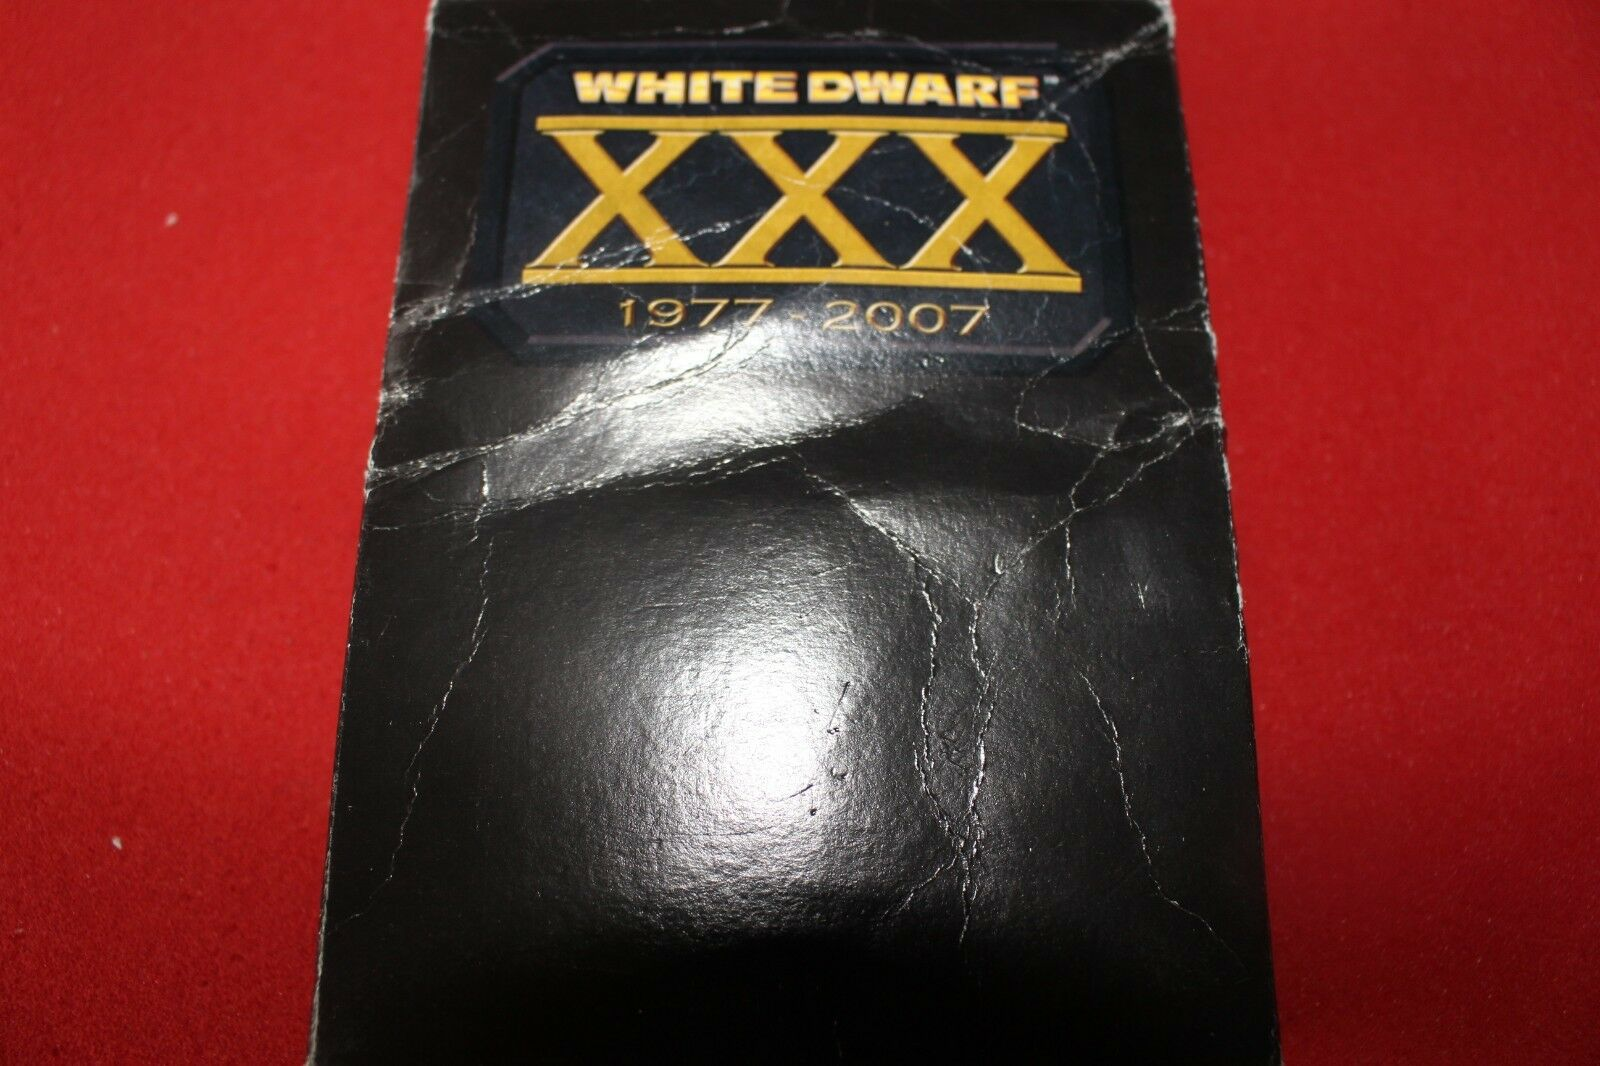 Games Workshop WARHAMMER WHITE DWARF XXX ANNIVERSARIO COFANETTO 1977 2007 30 ANNO